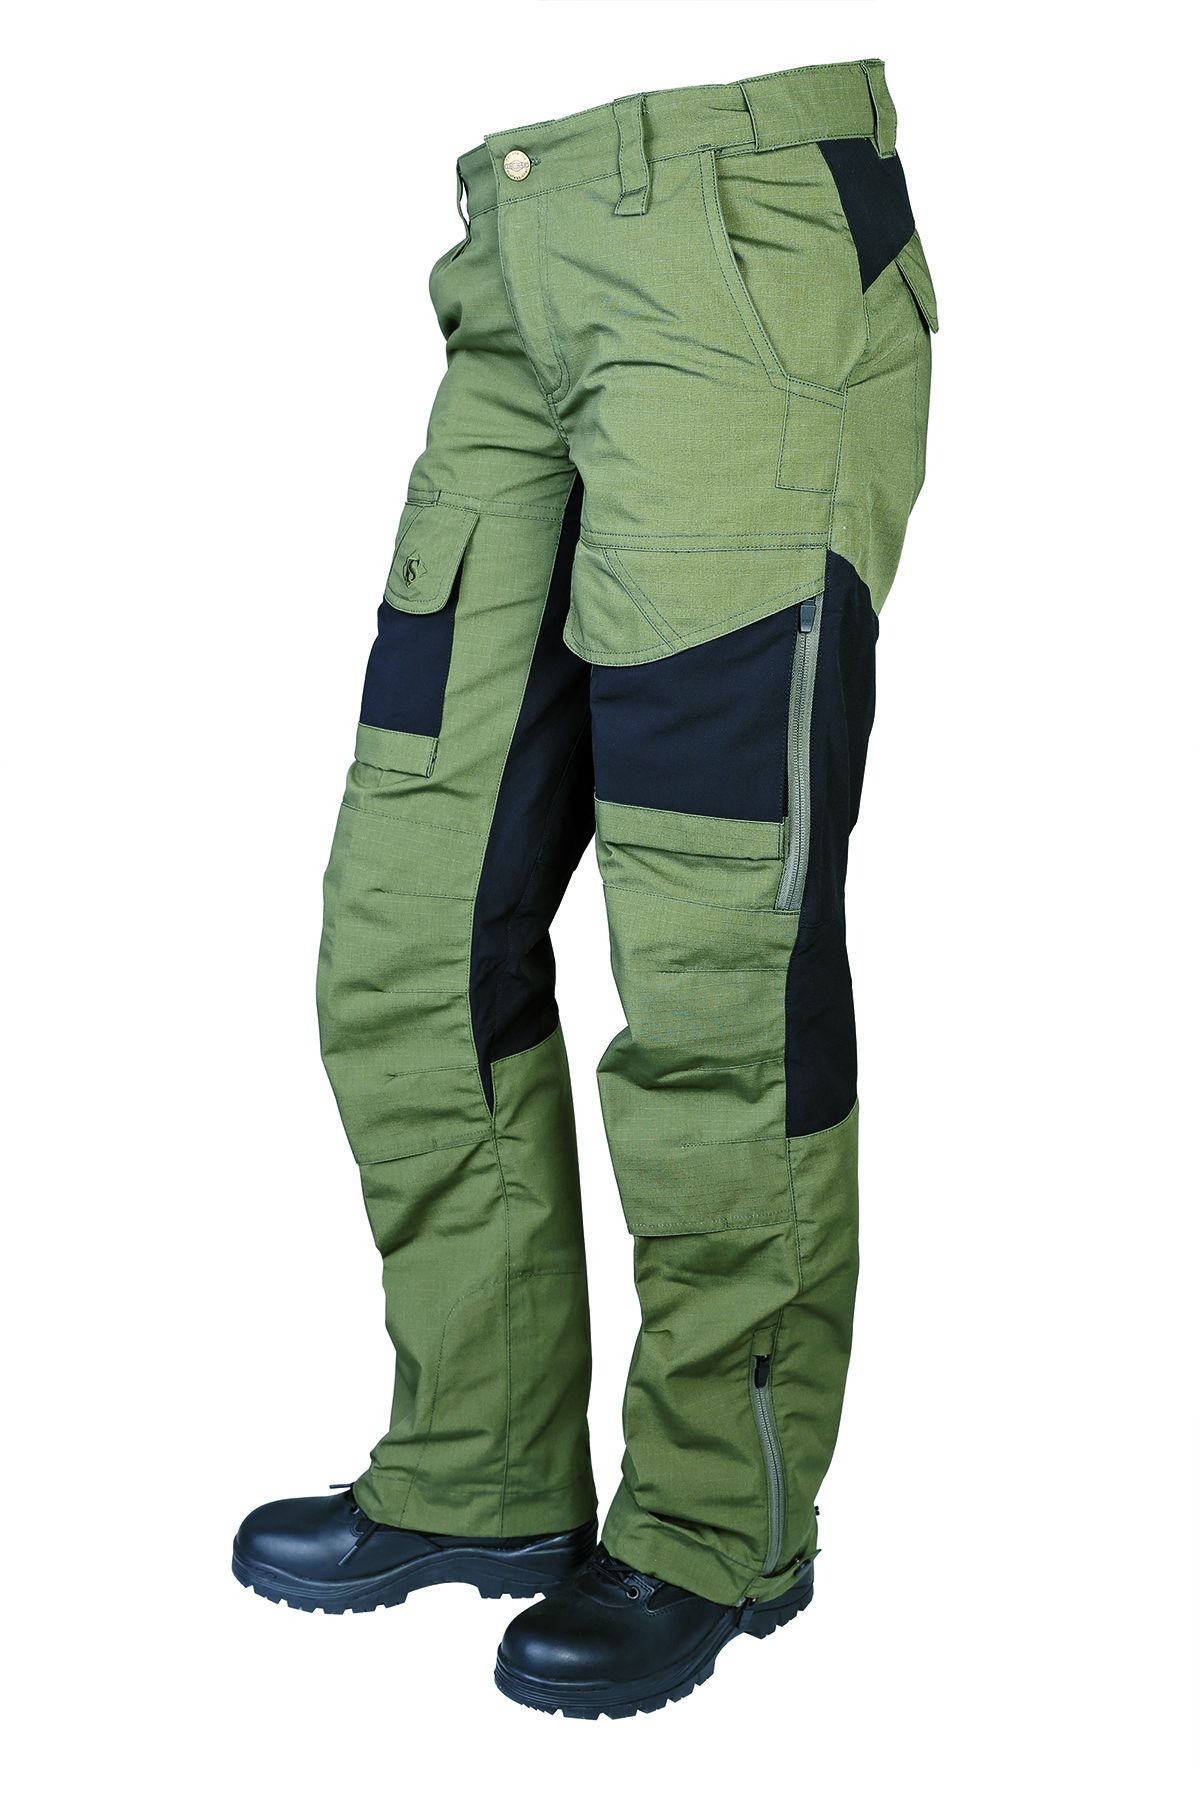 Police Product Test: TRU-SPEC Women's 24-7 Series 24-7 Xpedition Pants